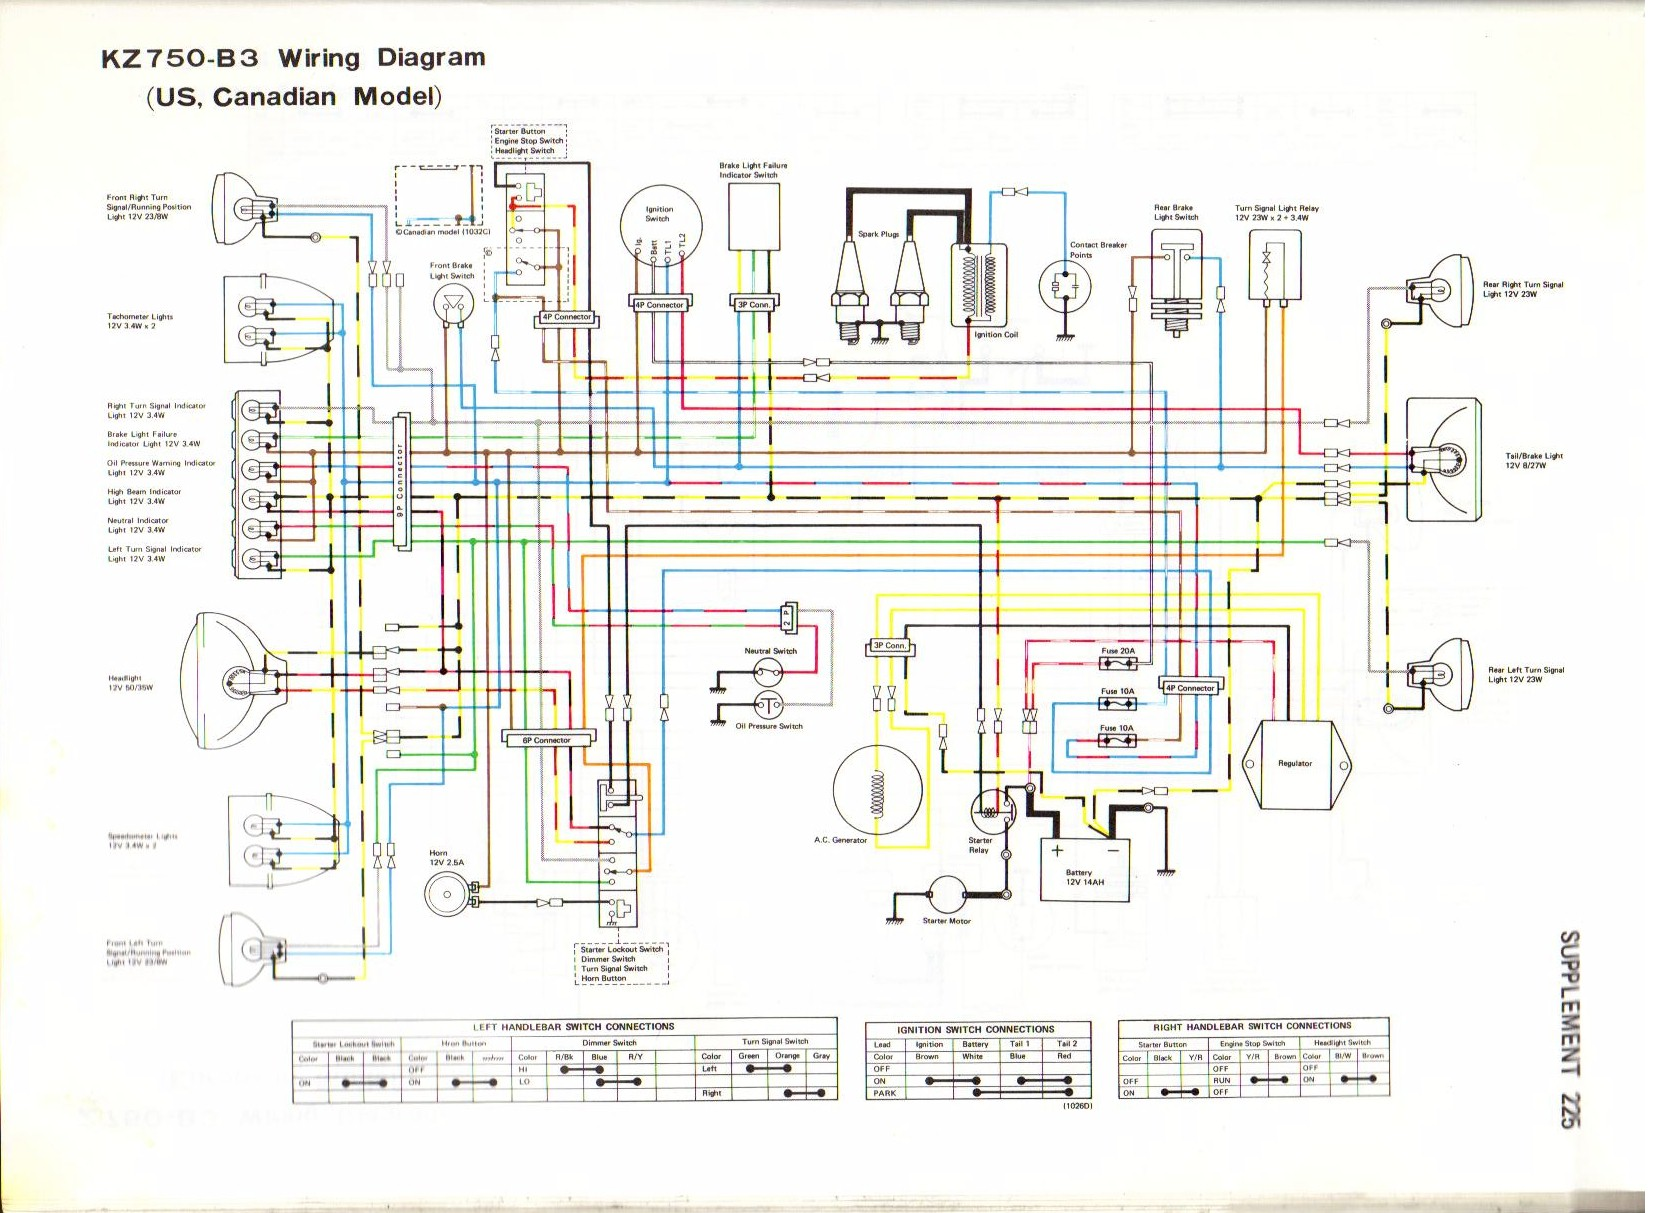 1980 kawasaki kz1000 wiring diagram images kawasaki kz1000 wiring kz750 twin wiring diagram on 1982 kawasaki kz750